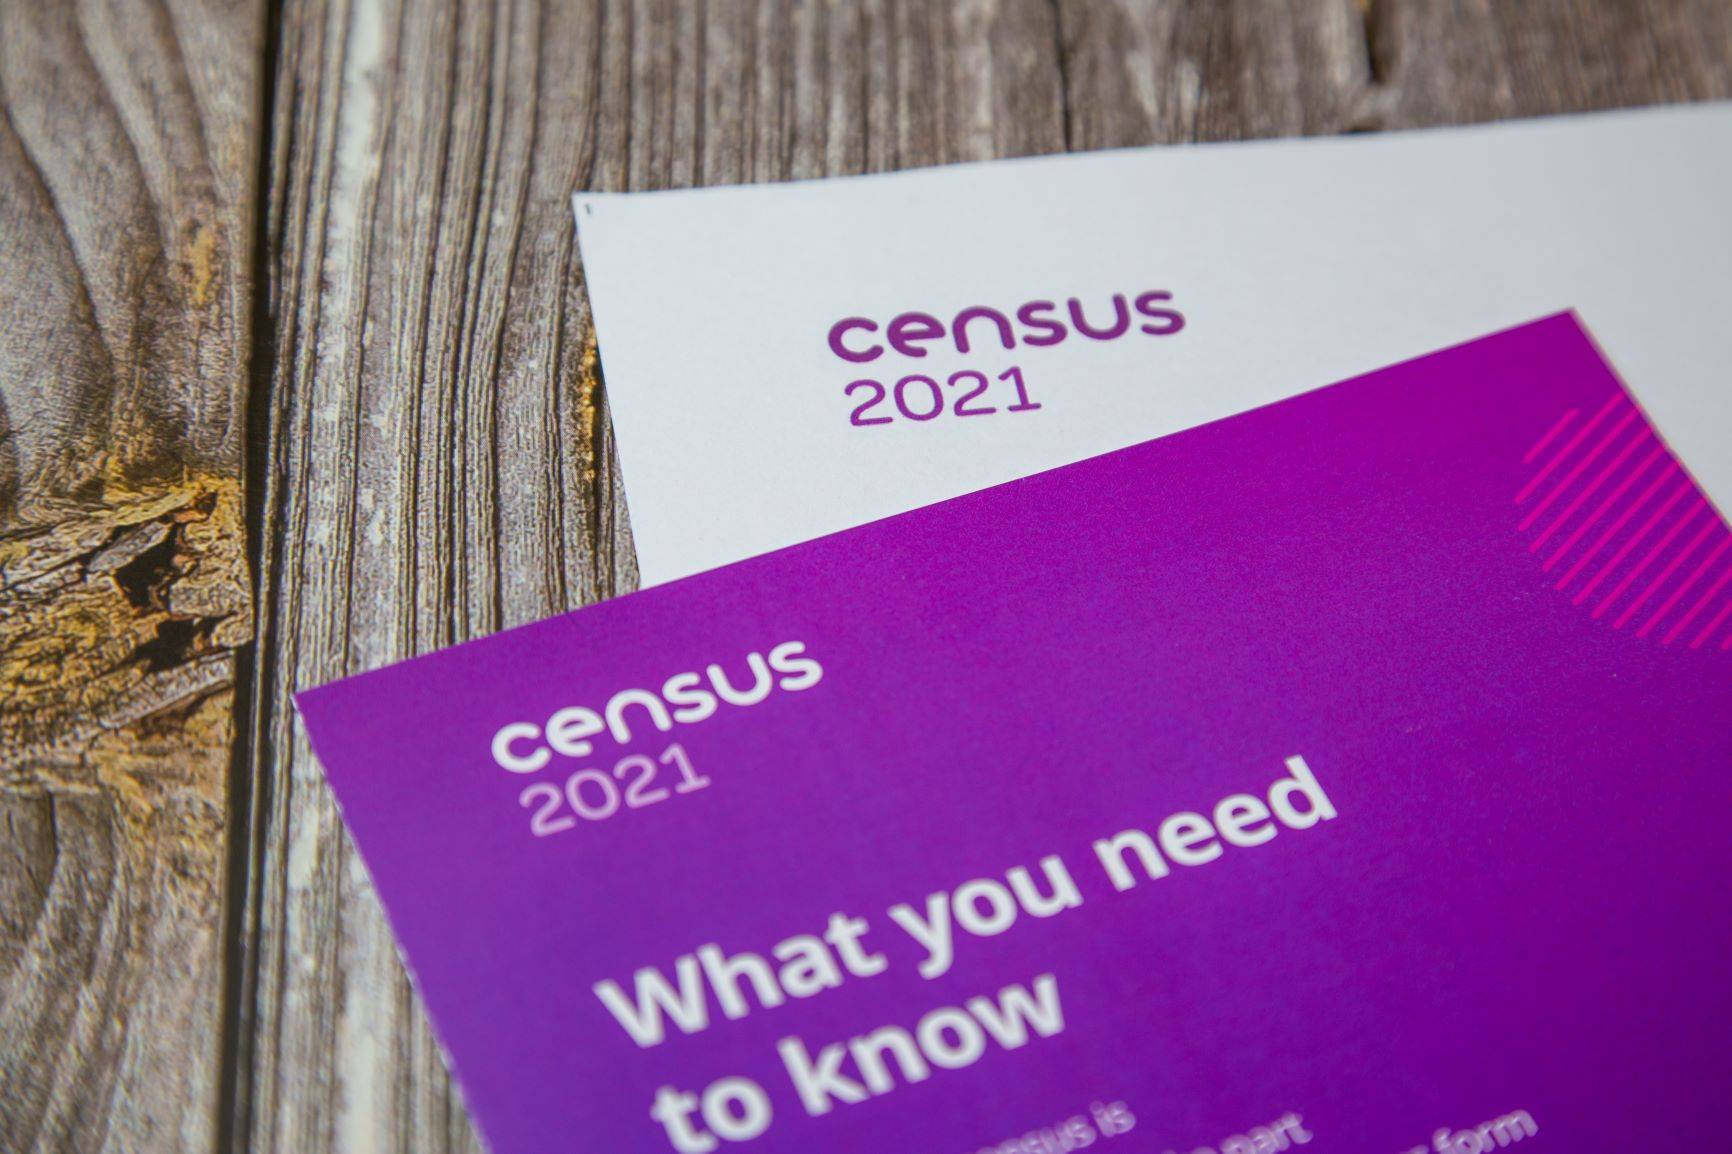 If you haven't completed your Census form it's not too late!